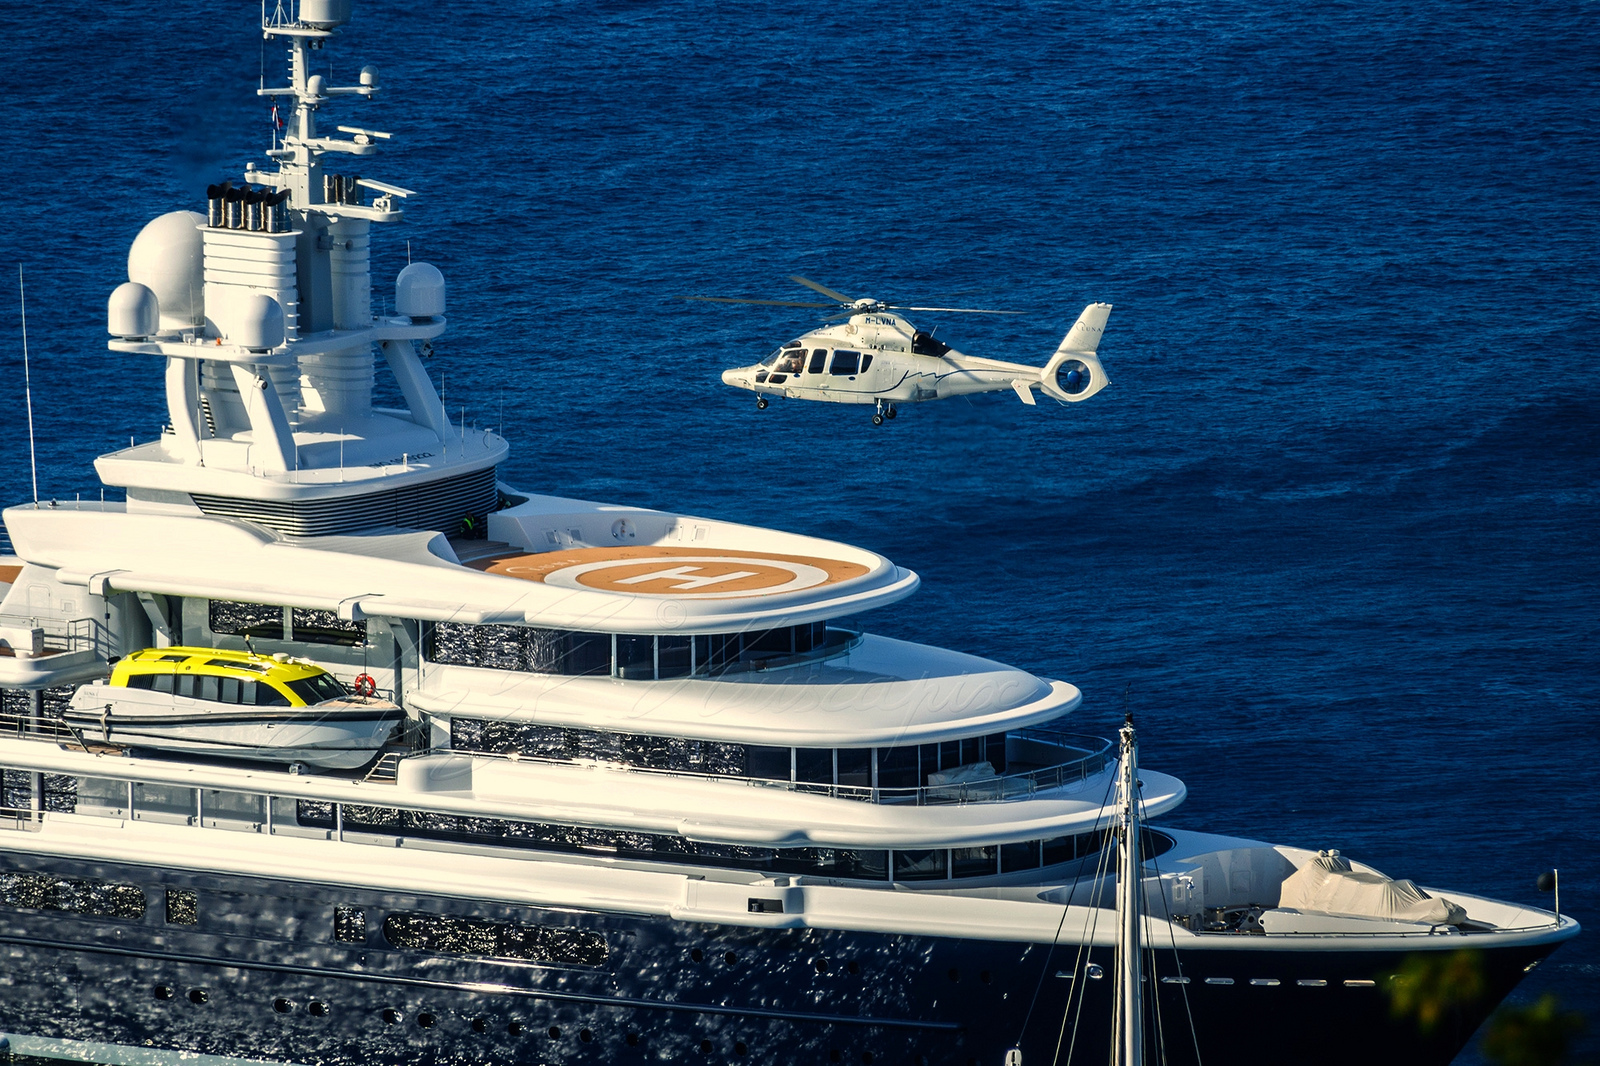 Luna Helicopter Landing Photo Credit Muscapix Yacht